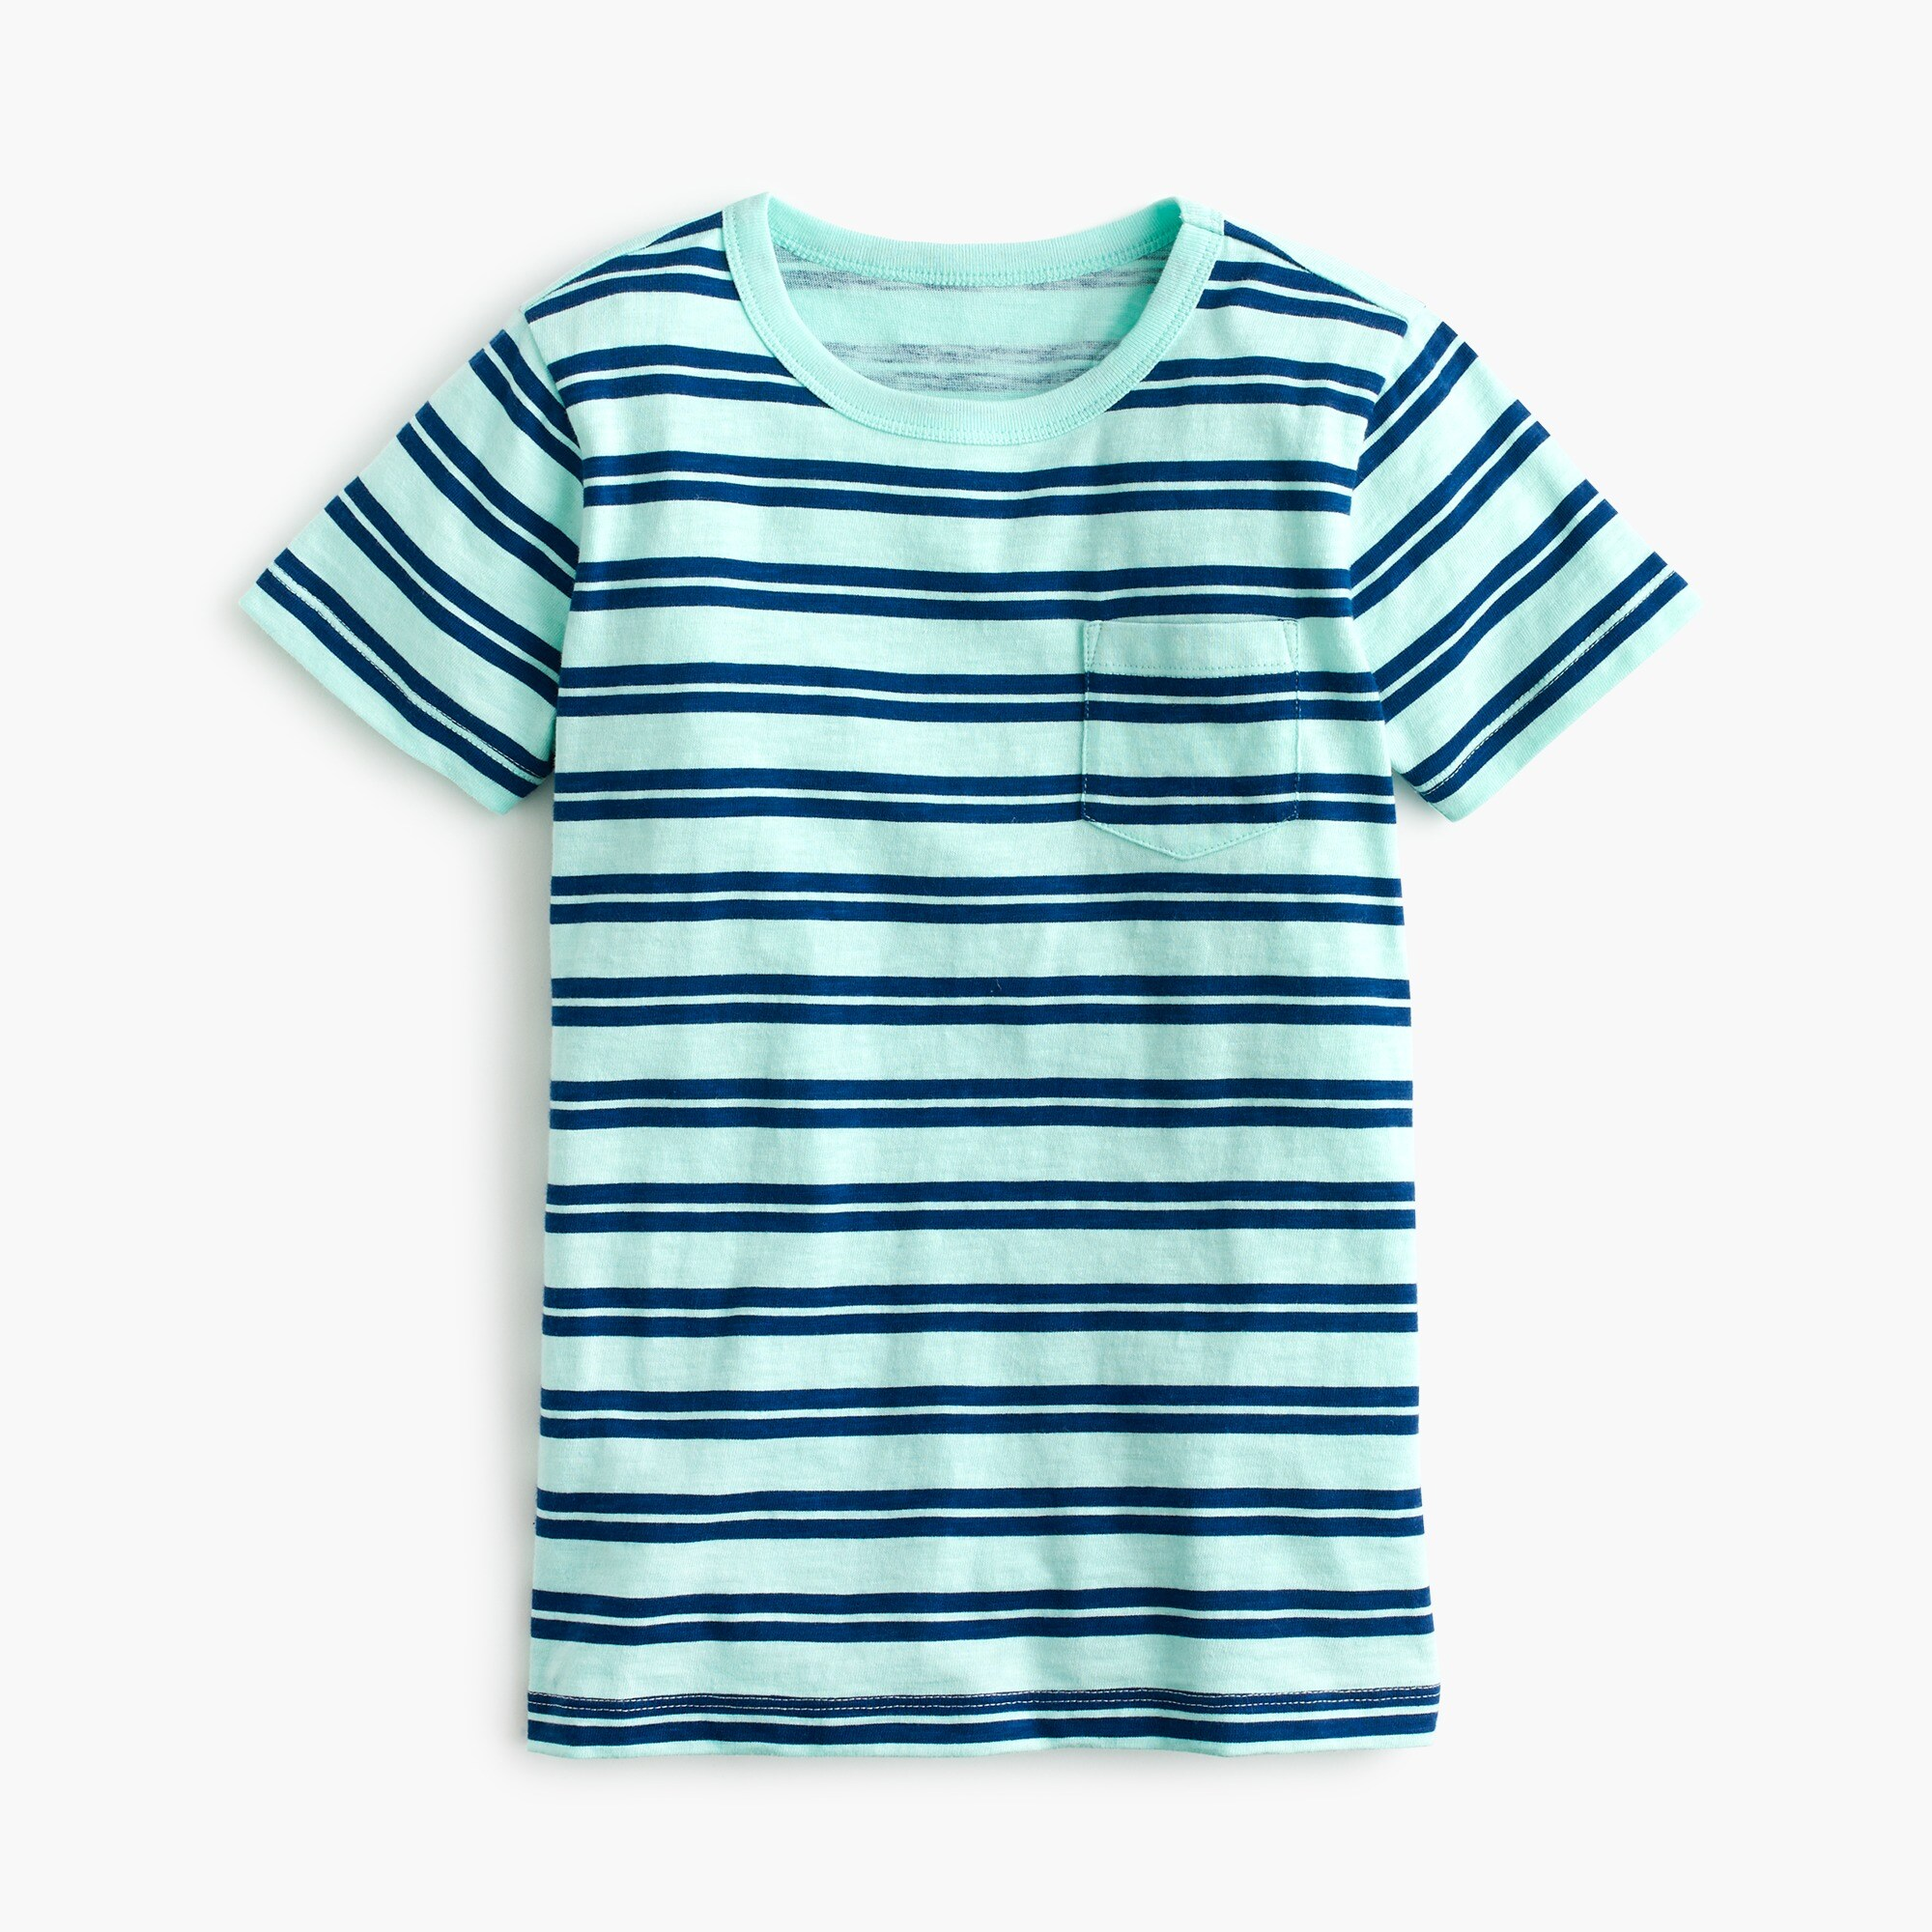 Image 1 for Boys' striped pocket T-shirt